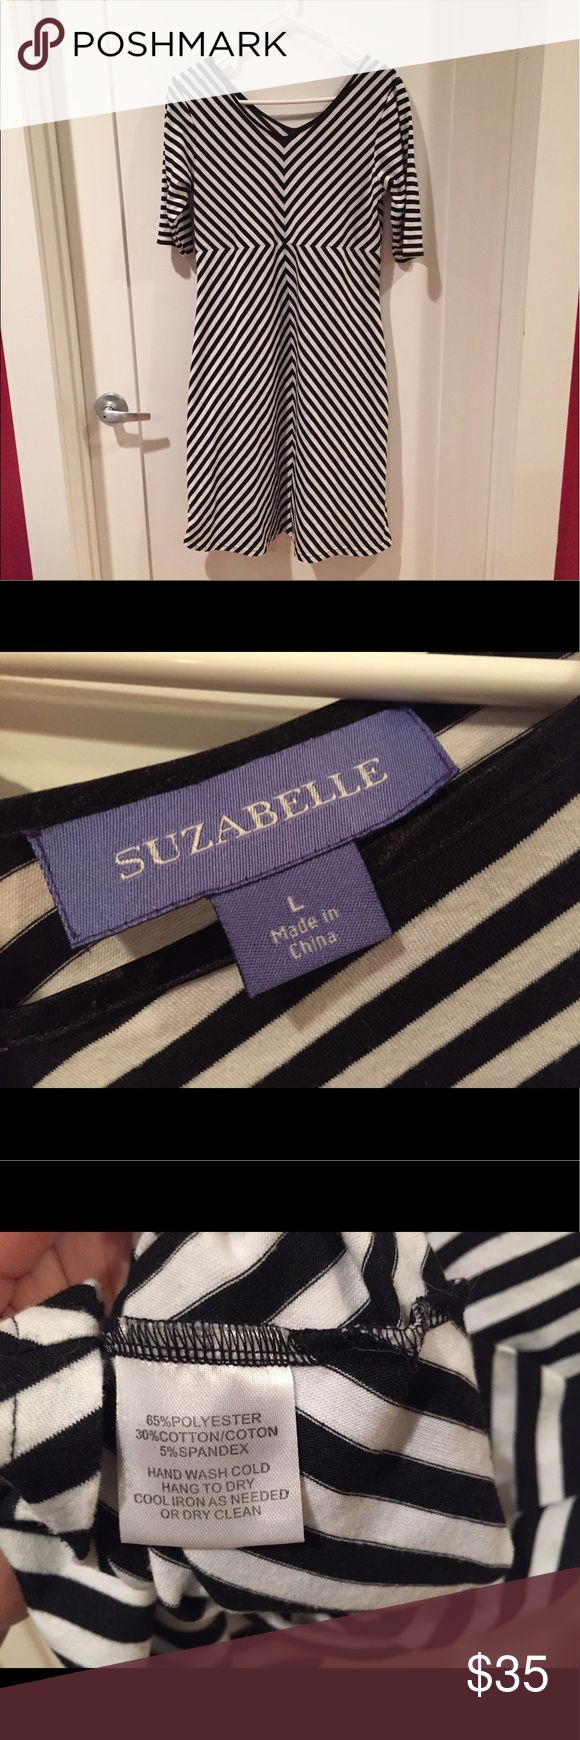 "✨Just reduced!✨ Geometric stripe b&w jersey dress Super-comfy and chic black and white striped dress by Suzabelle. Size L. Waist 34"", length 40"" from shoulder to hem. Polyester/cotton/spandex.  Worn only a few times.  Perfect with heels for work or boots or flats for an easy weekend outfit! Suzabelle Dresses"